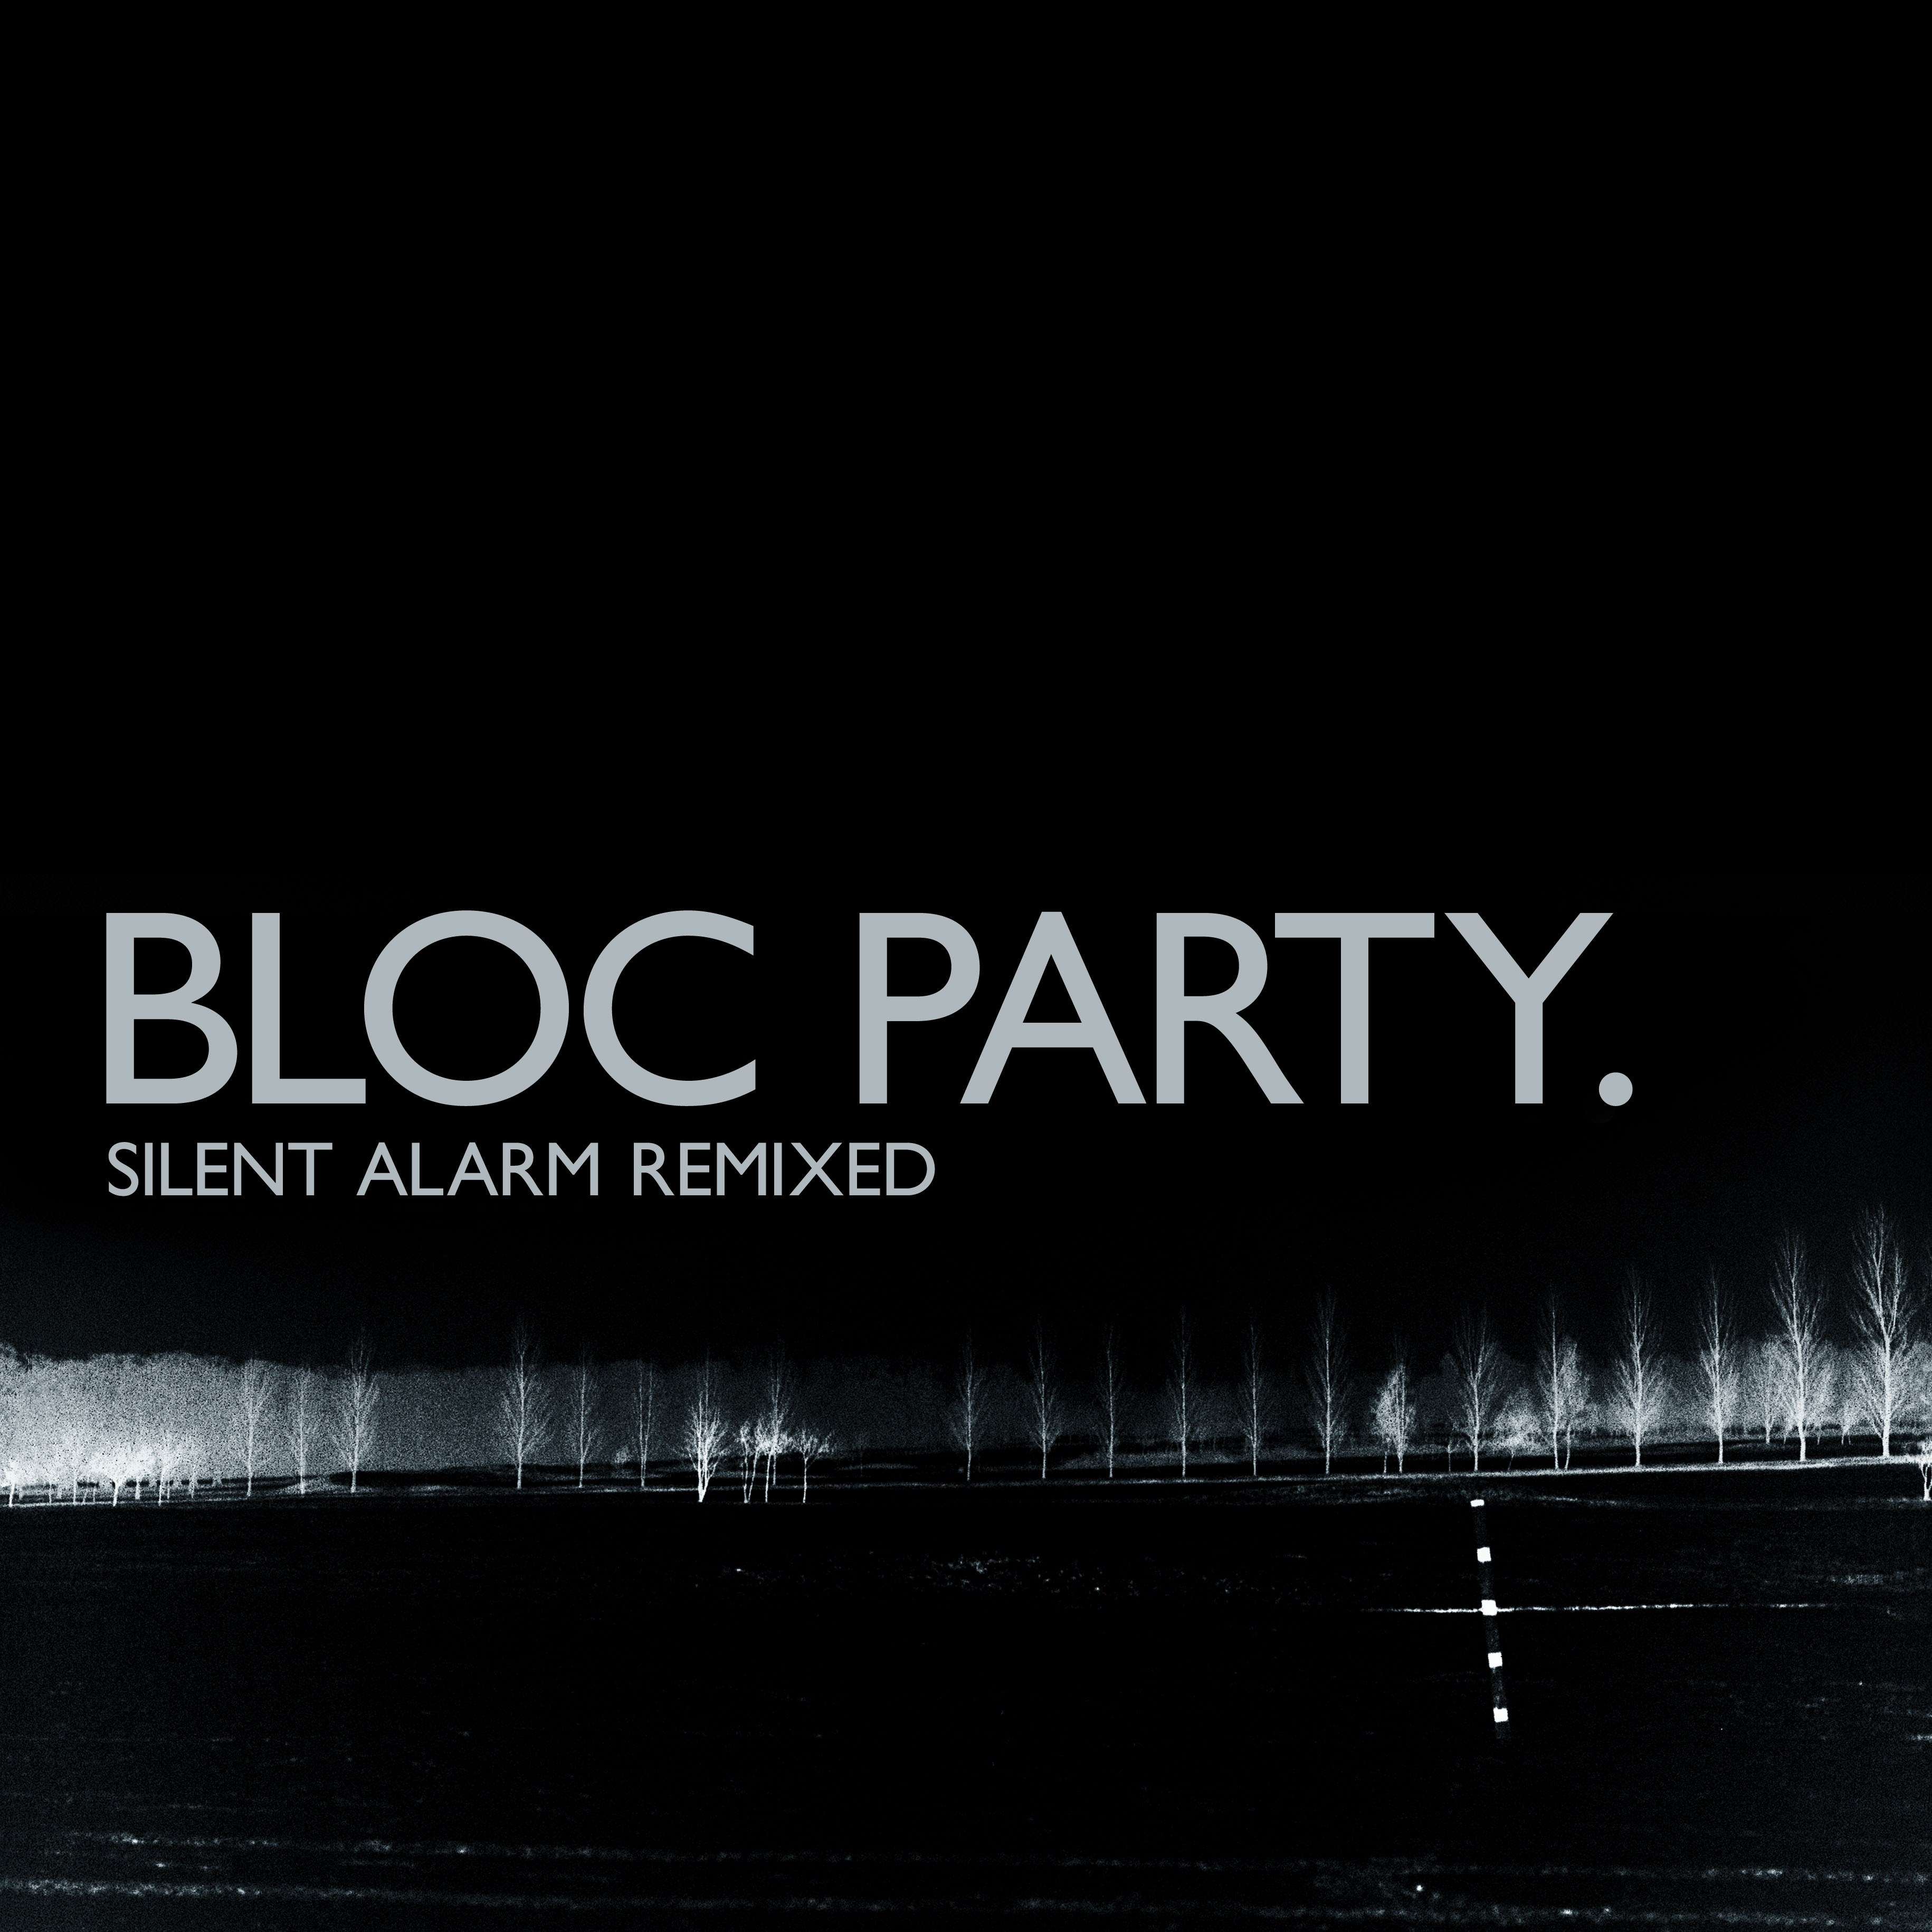 Silent Alarm Remixed (WAV)